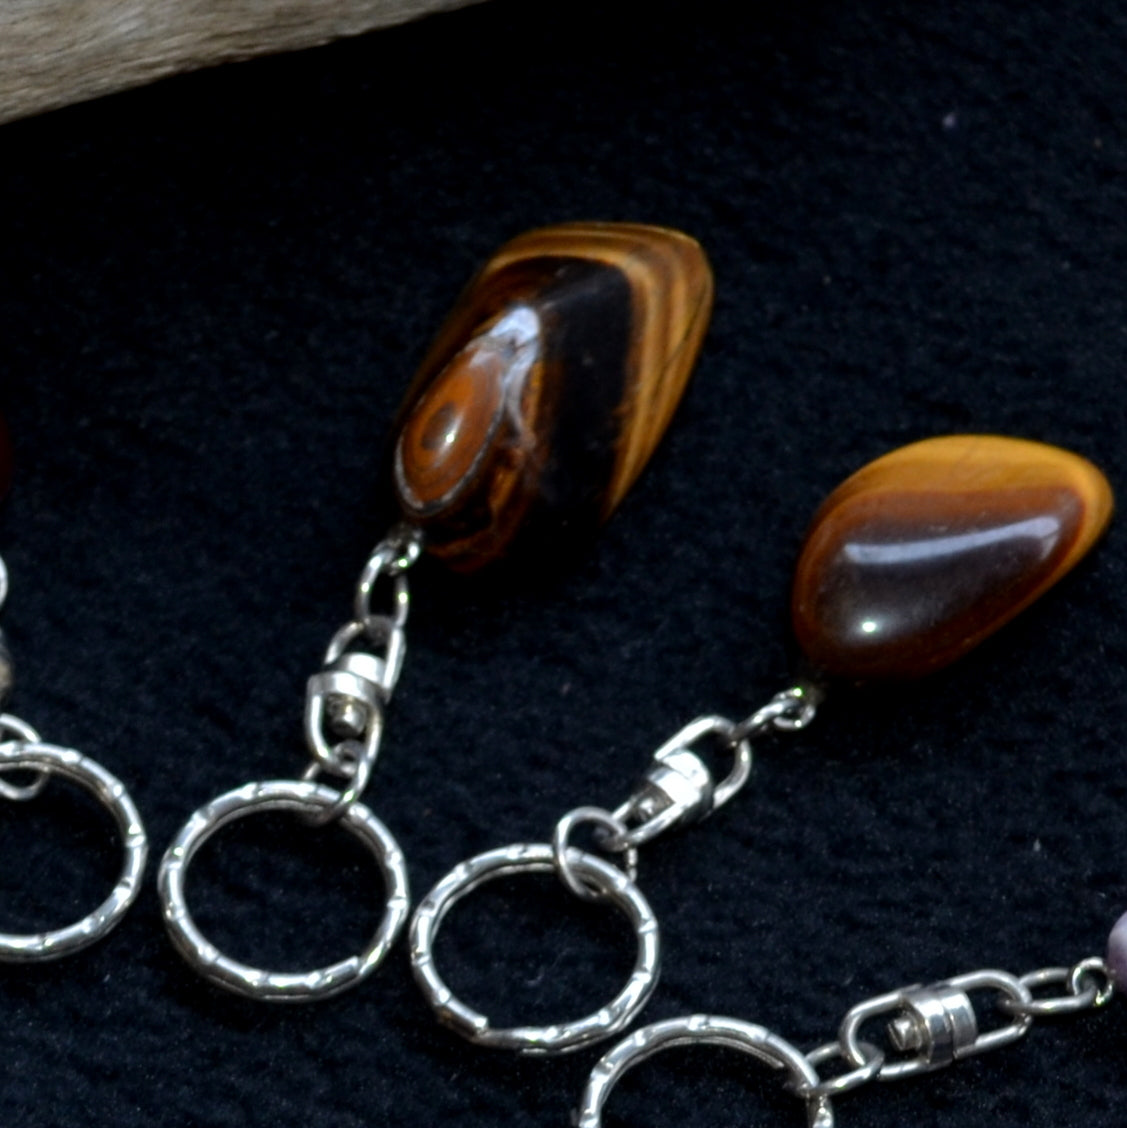 Gorgeous Gemstone Keyrings Assorted Each - Gold Tiger Eye - New at Illiom Crystals - We have Afterpay!